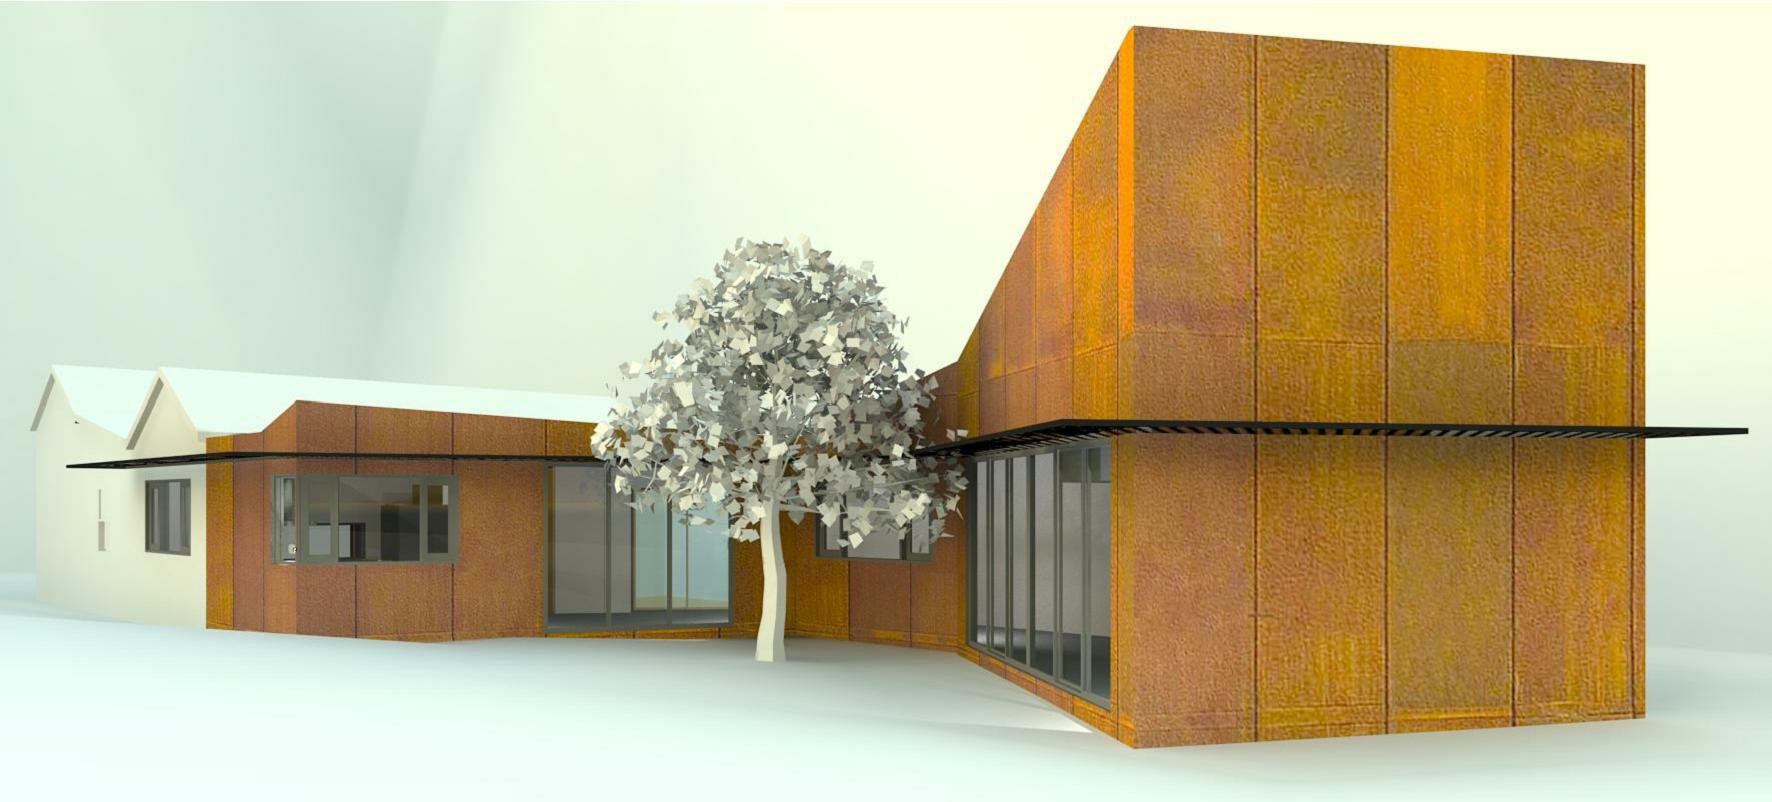 SHERRY AND CORIN - Rendering - 3D View 2_1_PICTURE